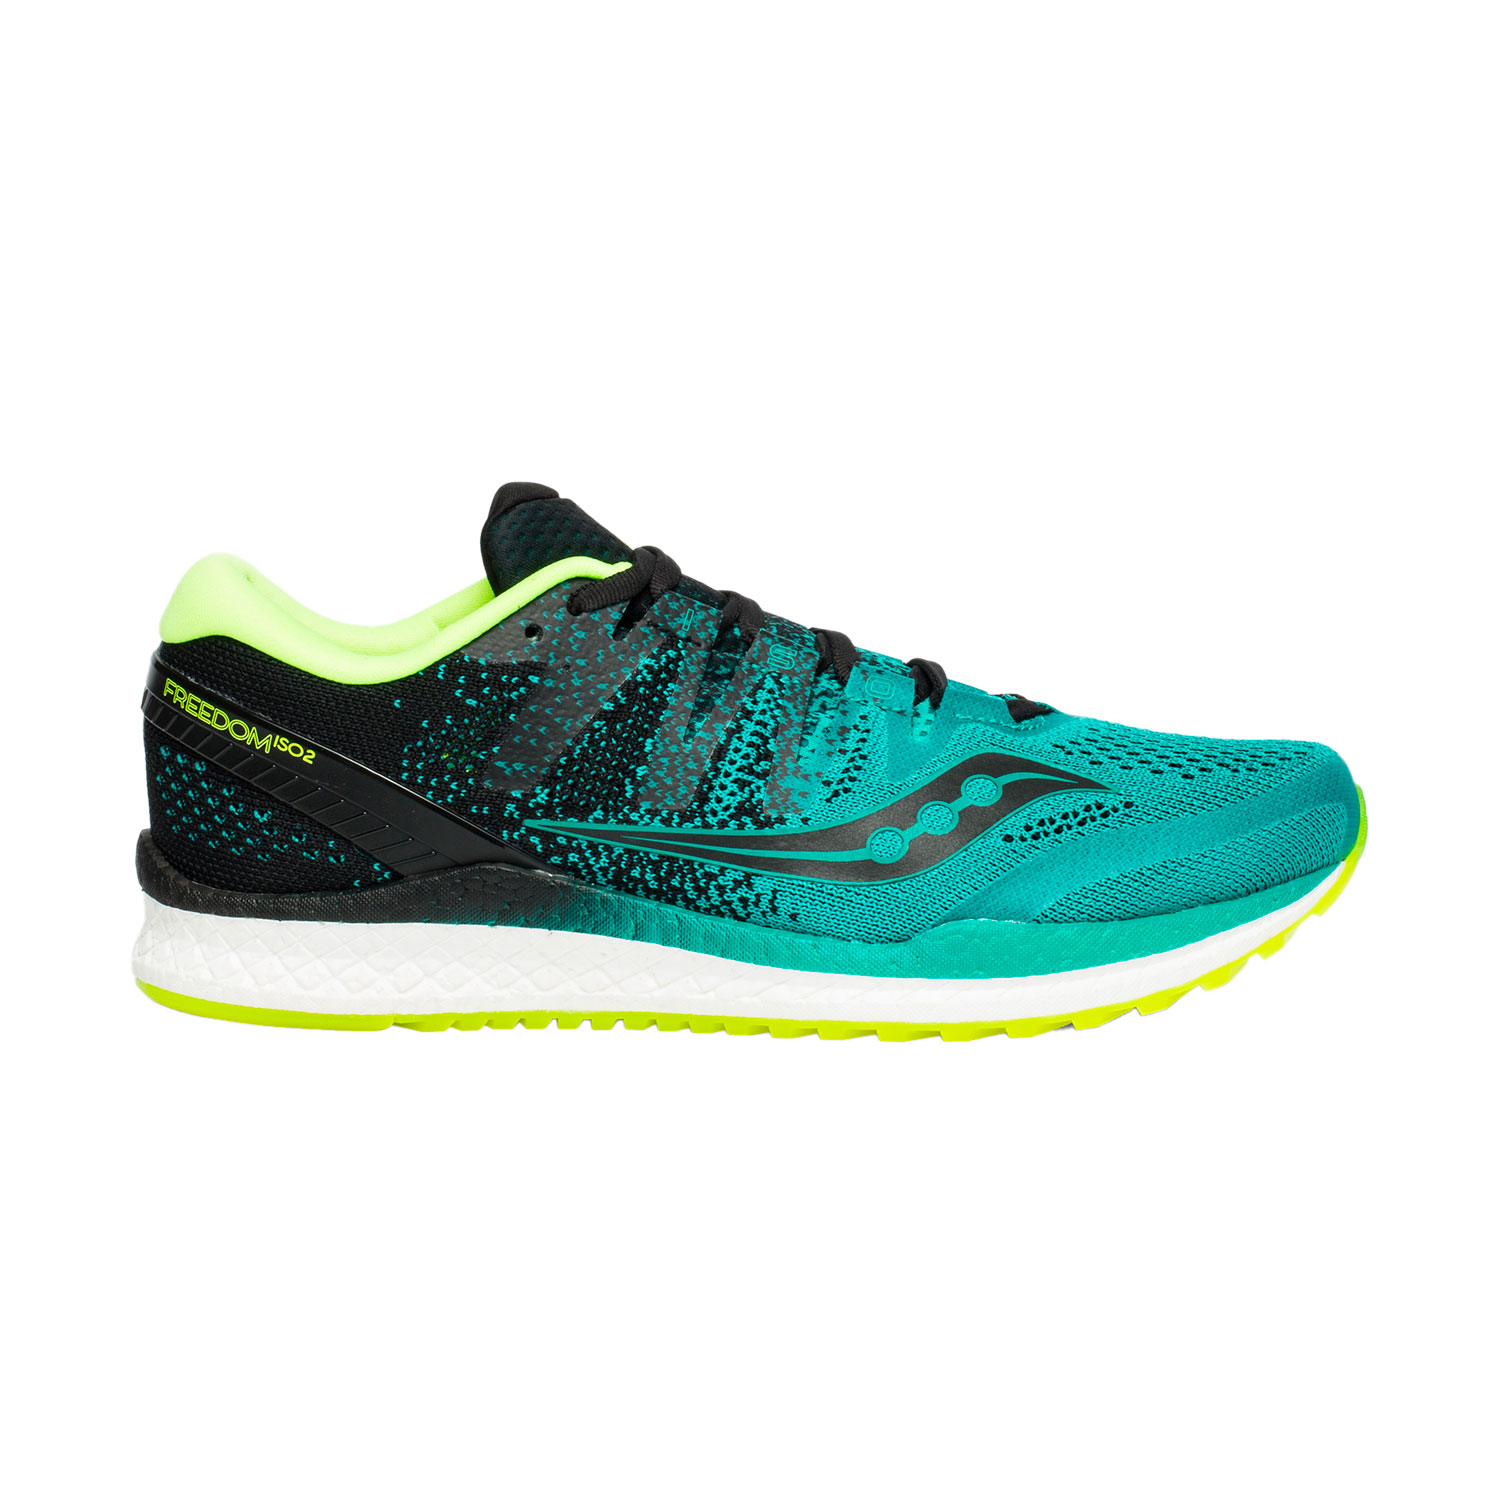 61407632 Saucony Freedom ISO 2 Men's Running Shoes - Teal/Black